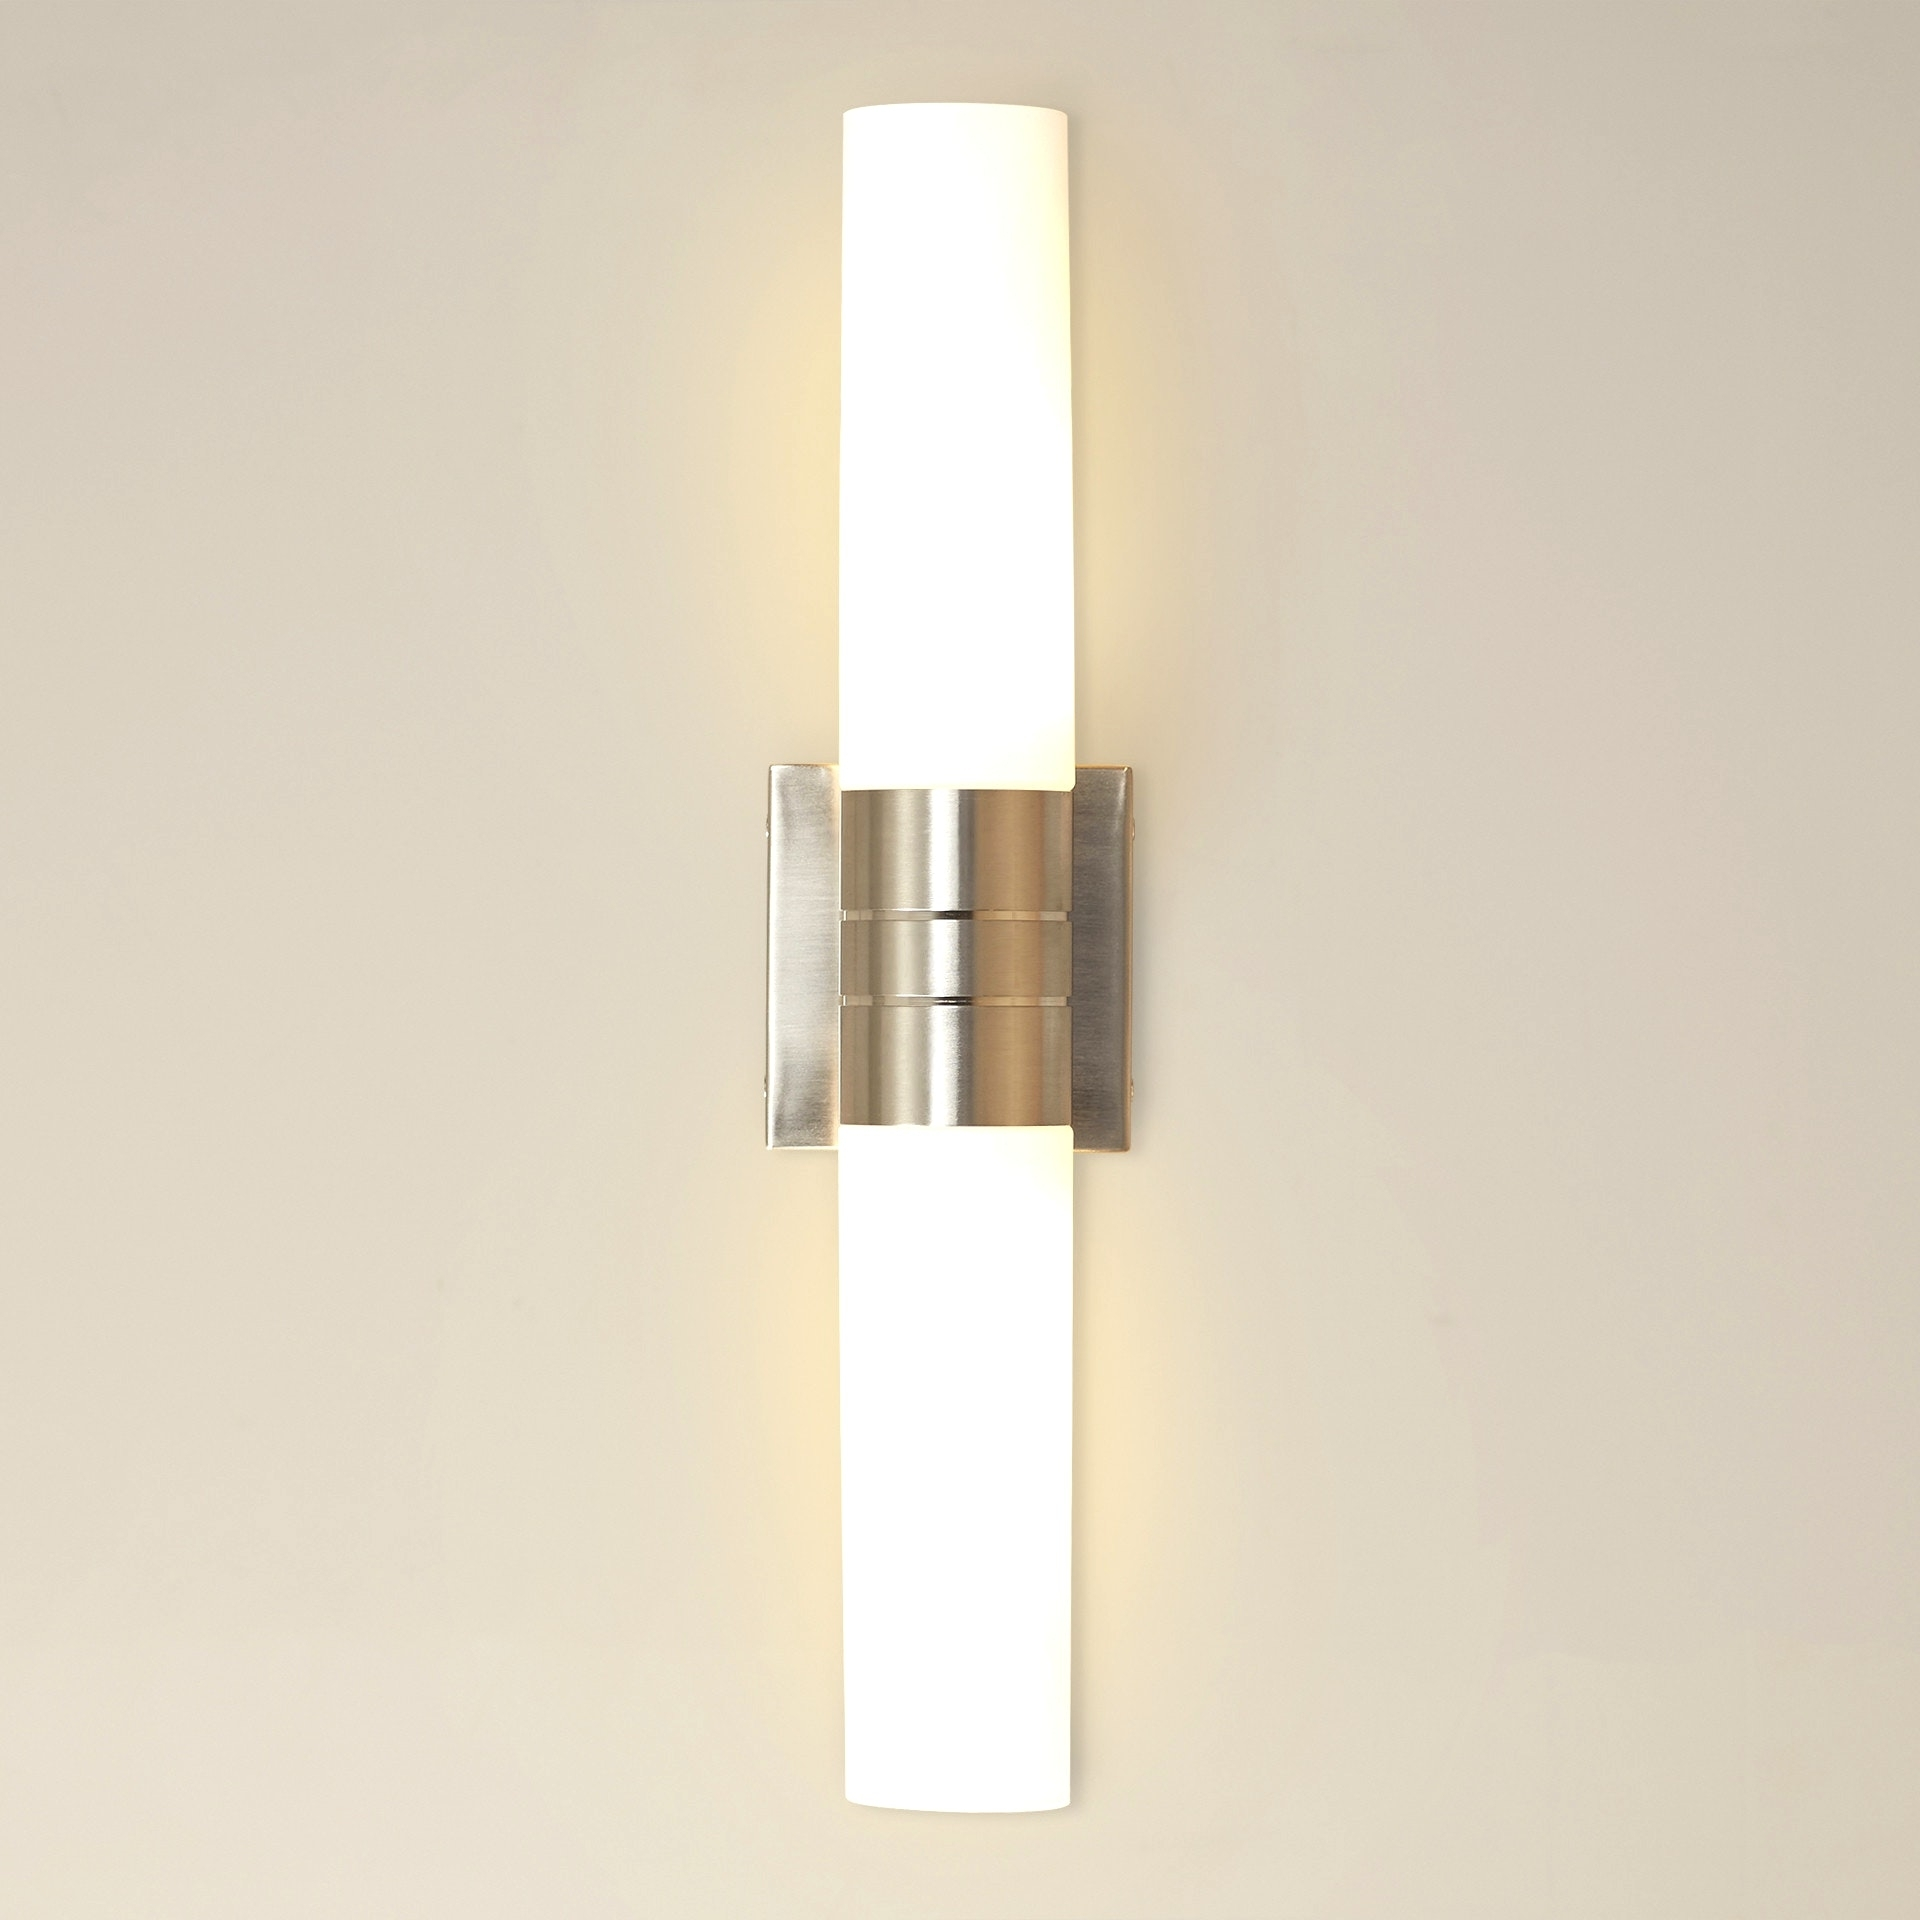 Battery Operated Outdoor Lights At Wayfair With Regard To Widely Used Wayfair Wall Lights (View 7 of 20)